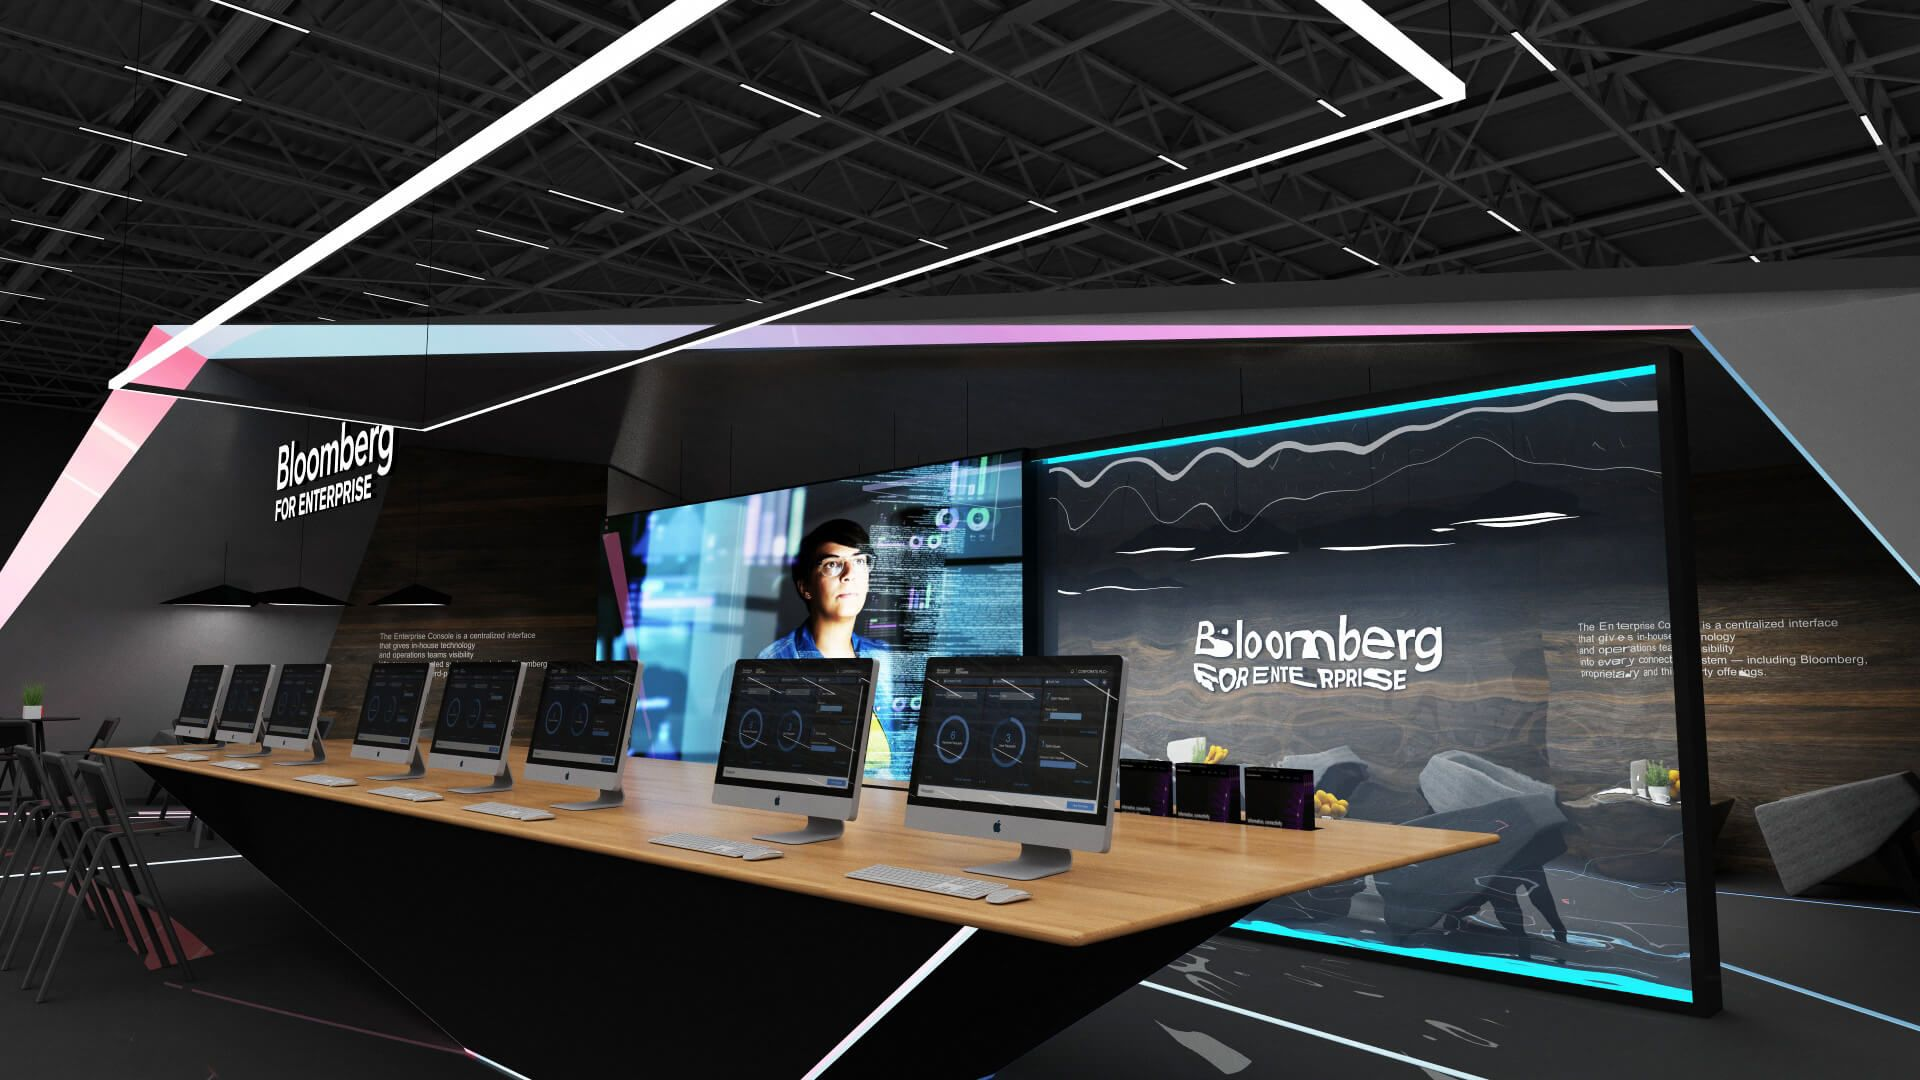 Exhibition Booth Design Concept : Bloomberg exhibition booth design concept exhibition stands